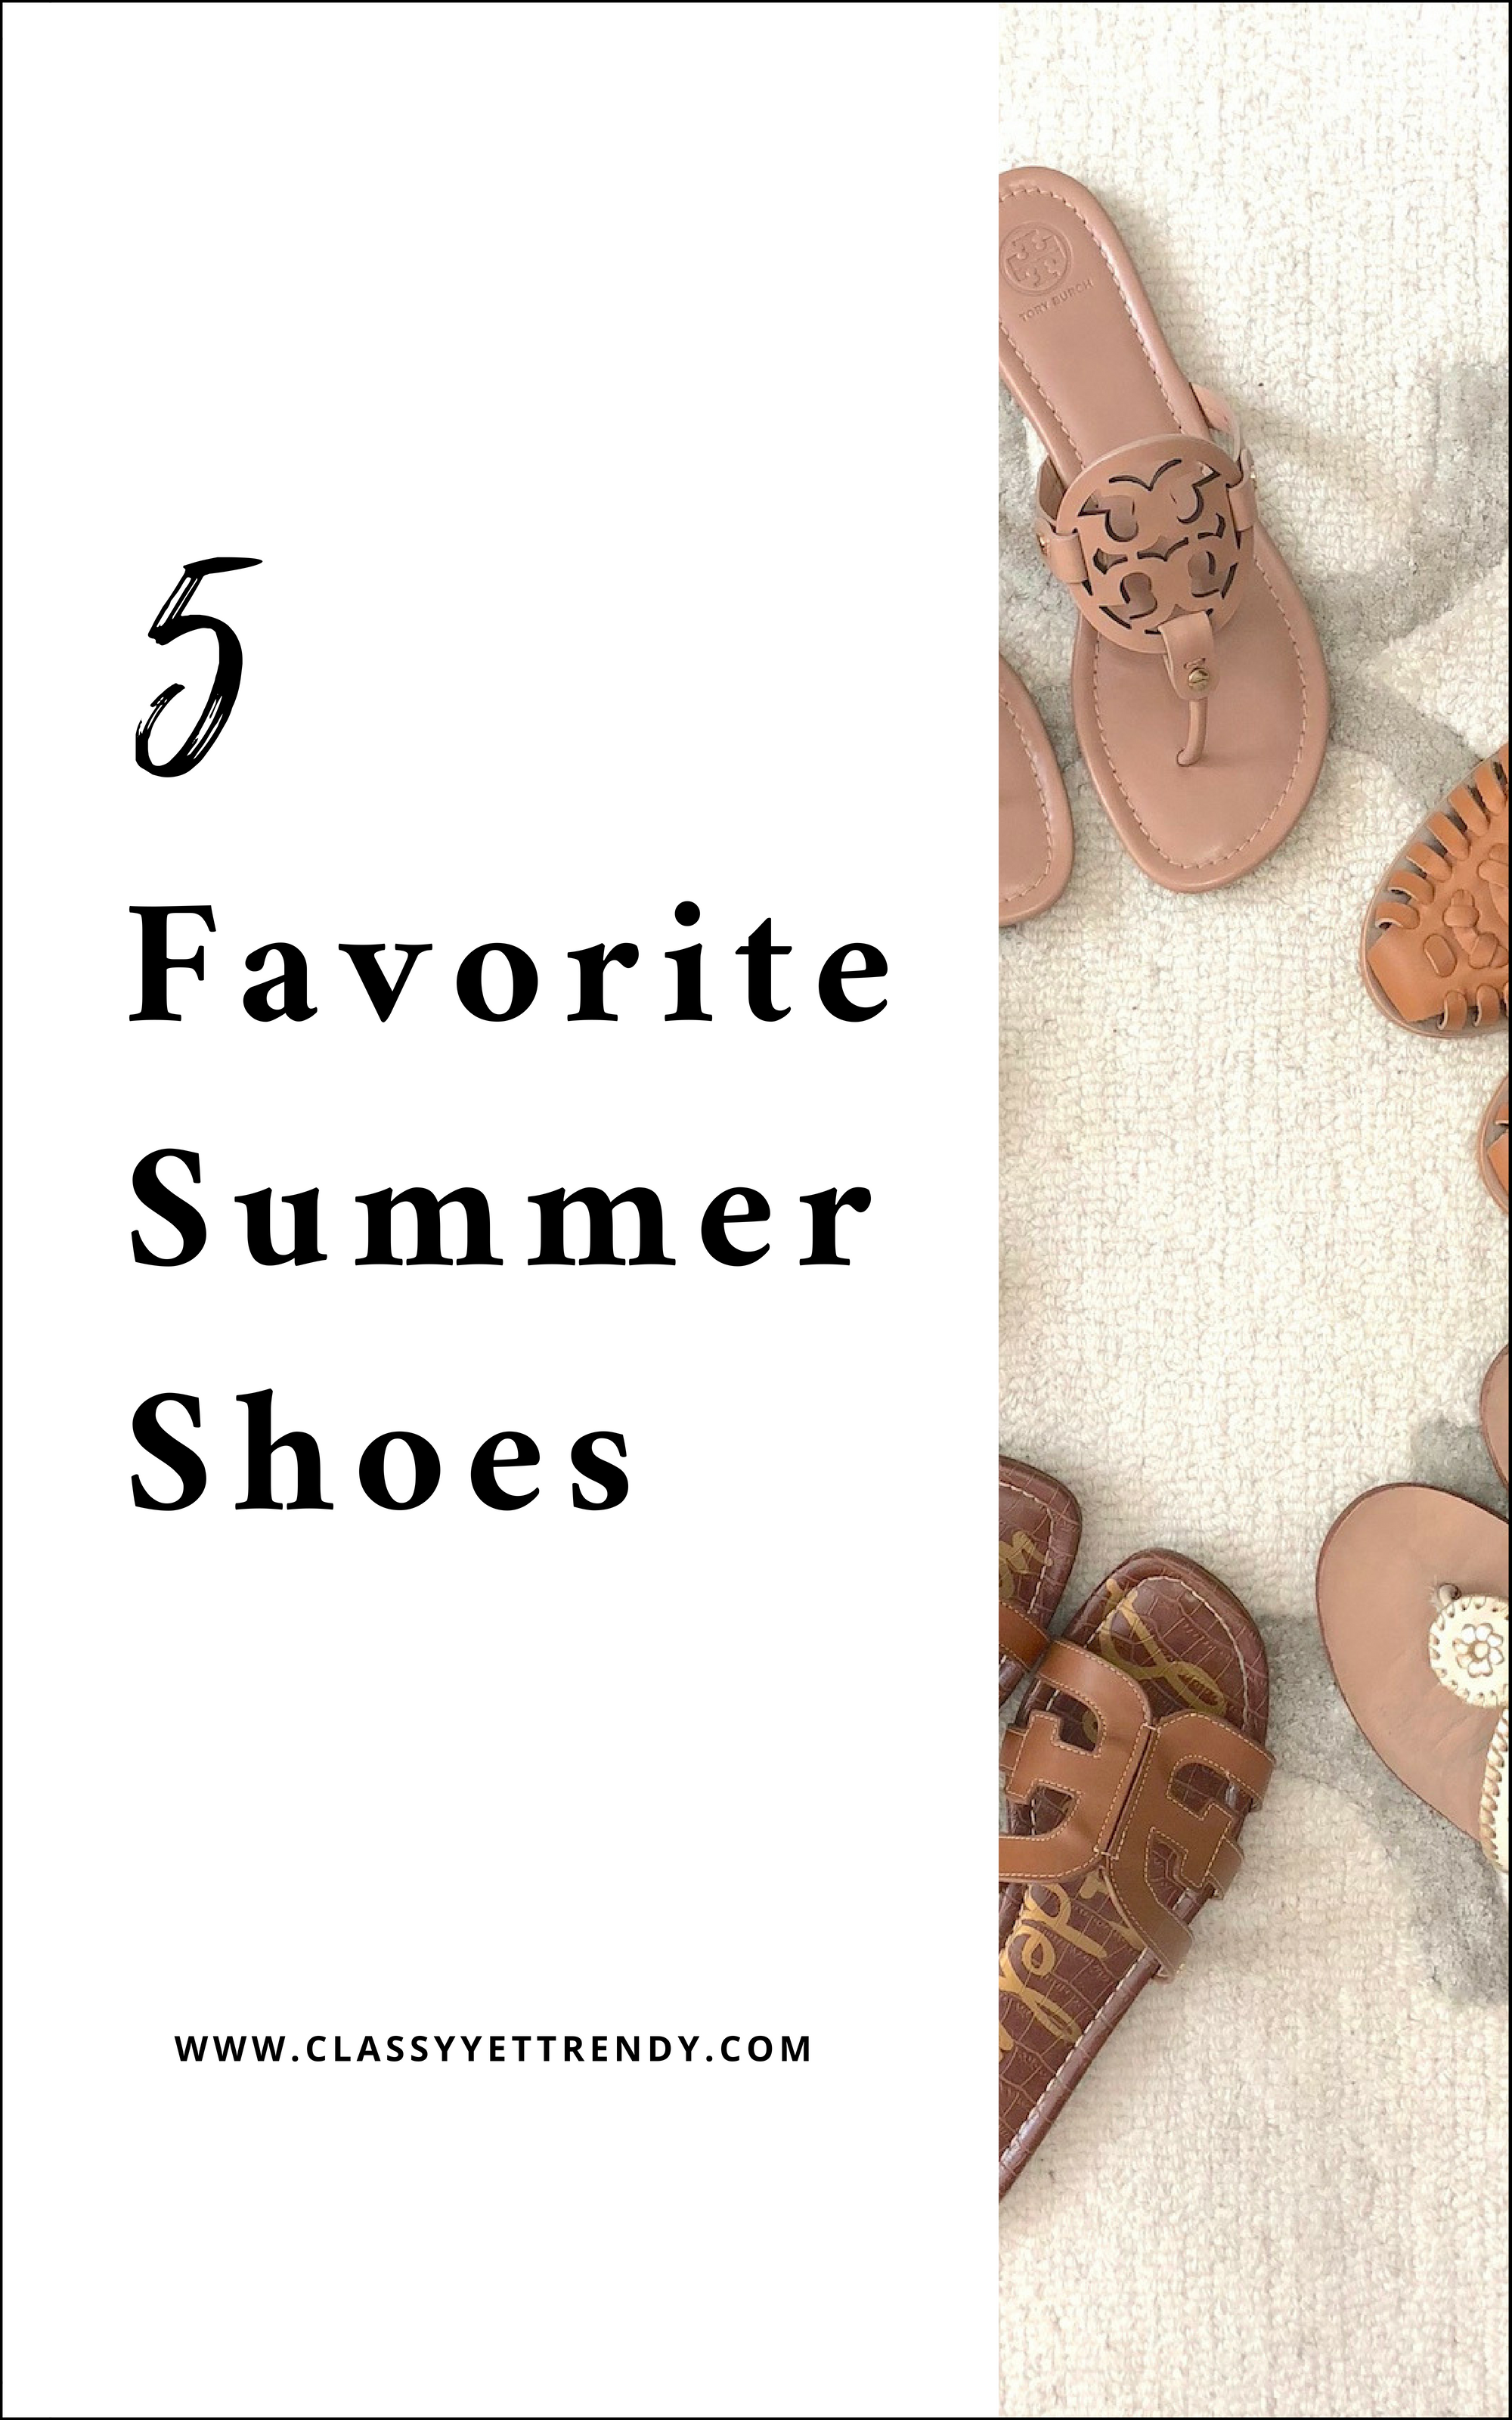 My 5 Favorite Summer Shoes